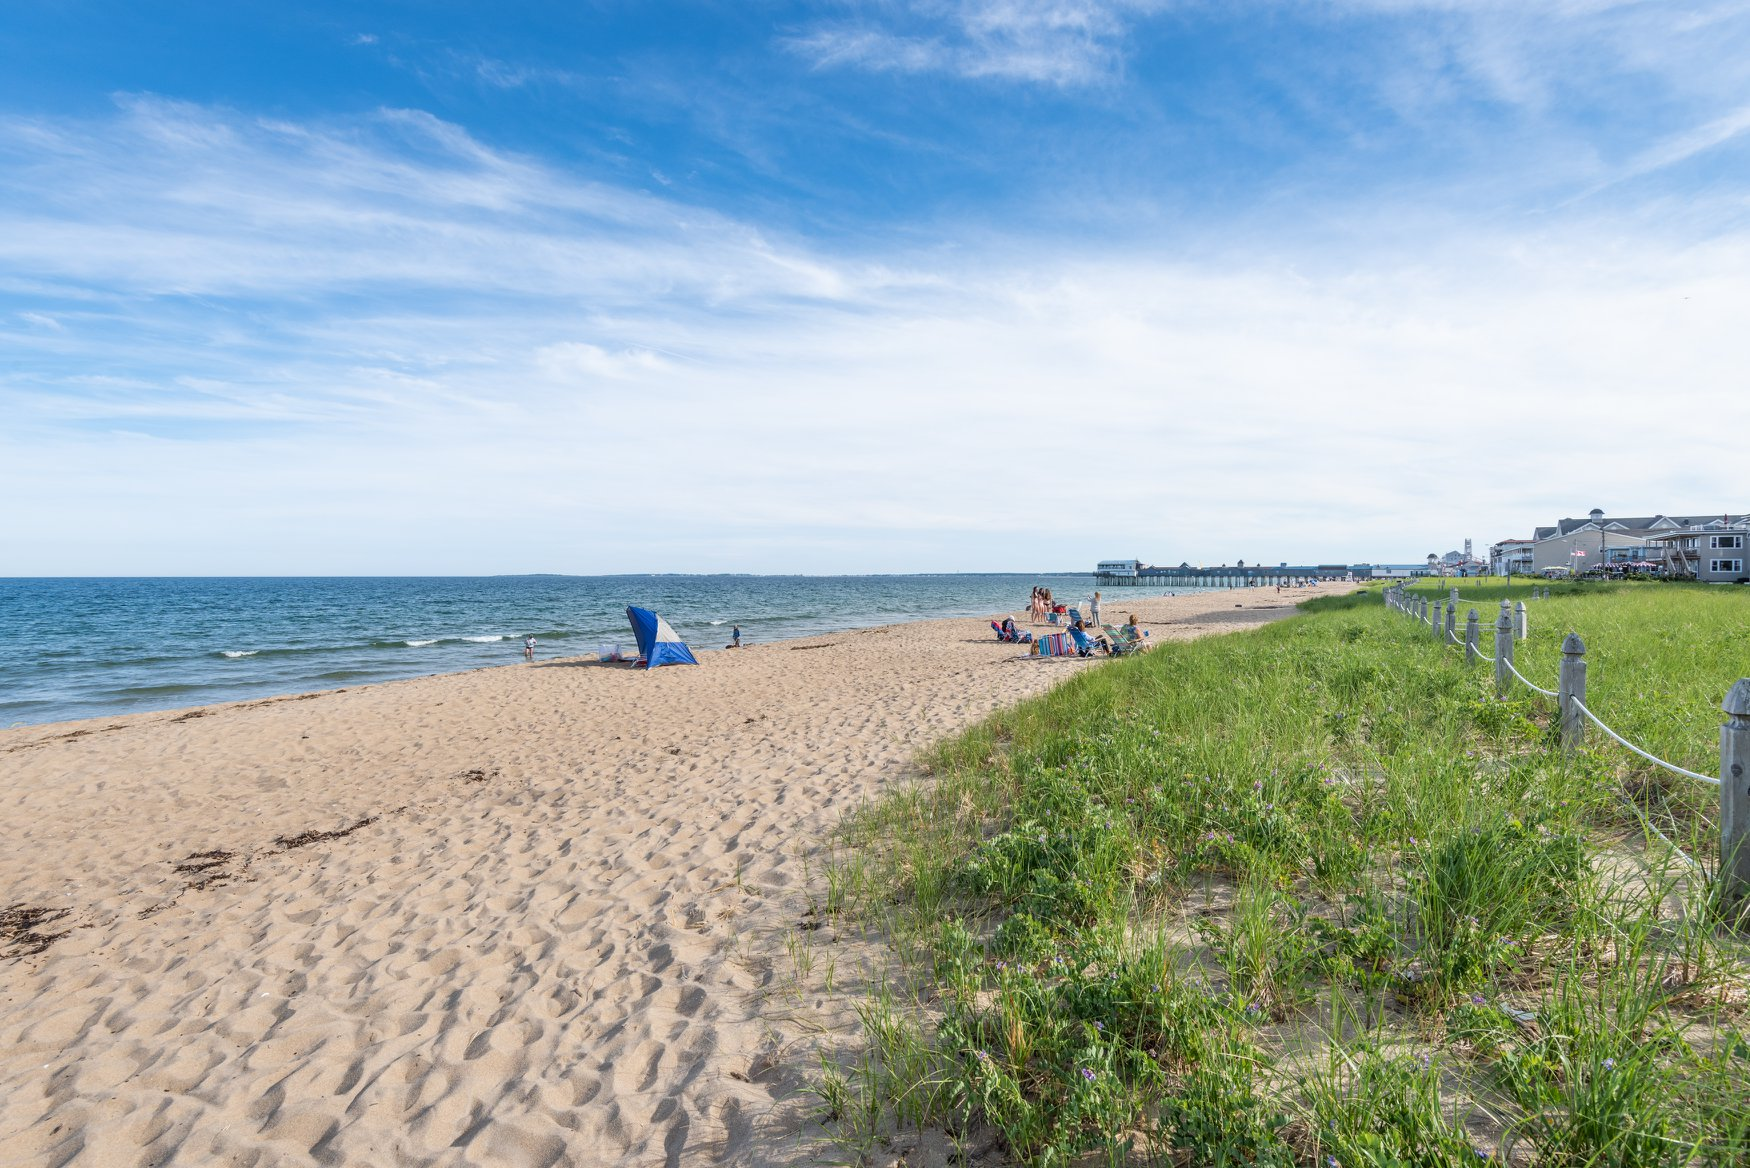 Sand Stays Vacation Rental Management Company Old Orchard Beach Greater Portland Area of Maine